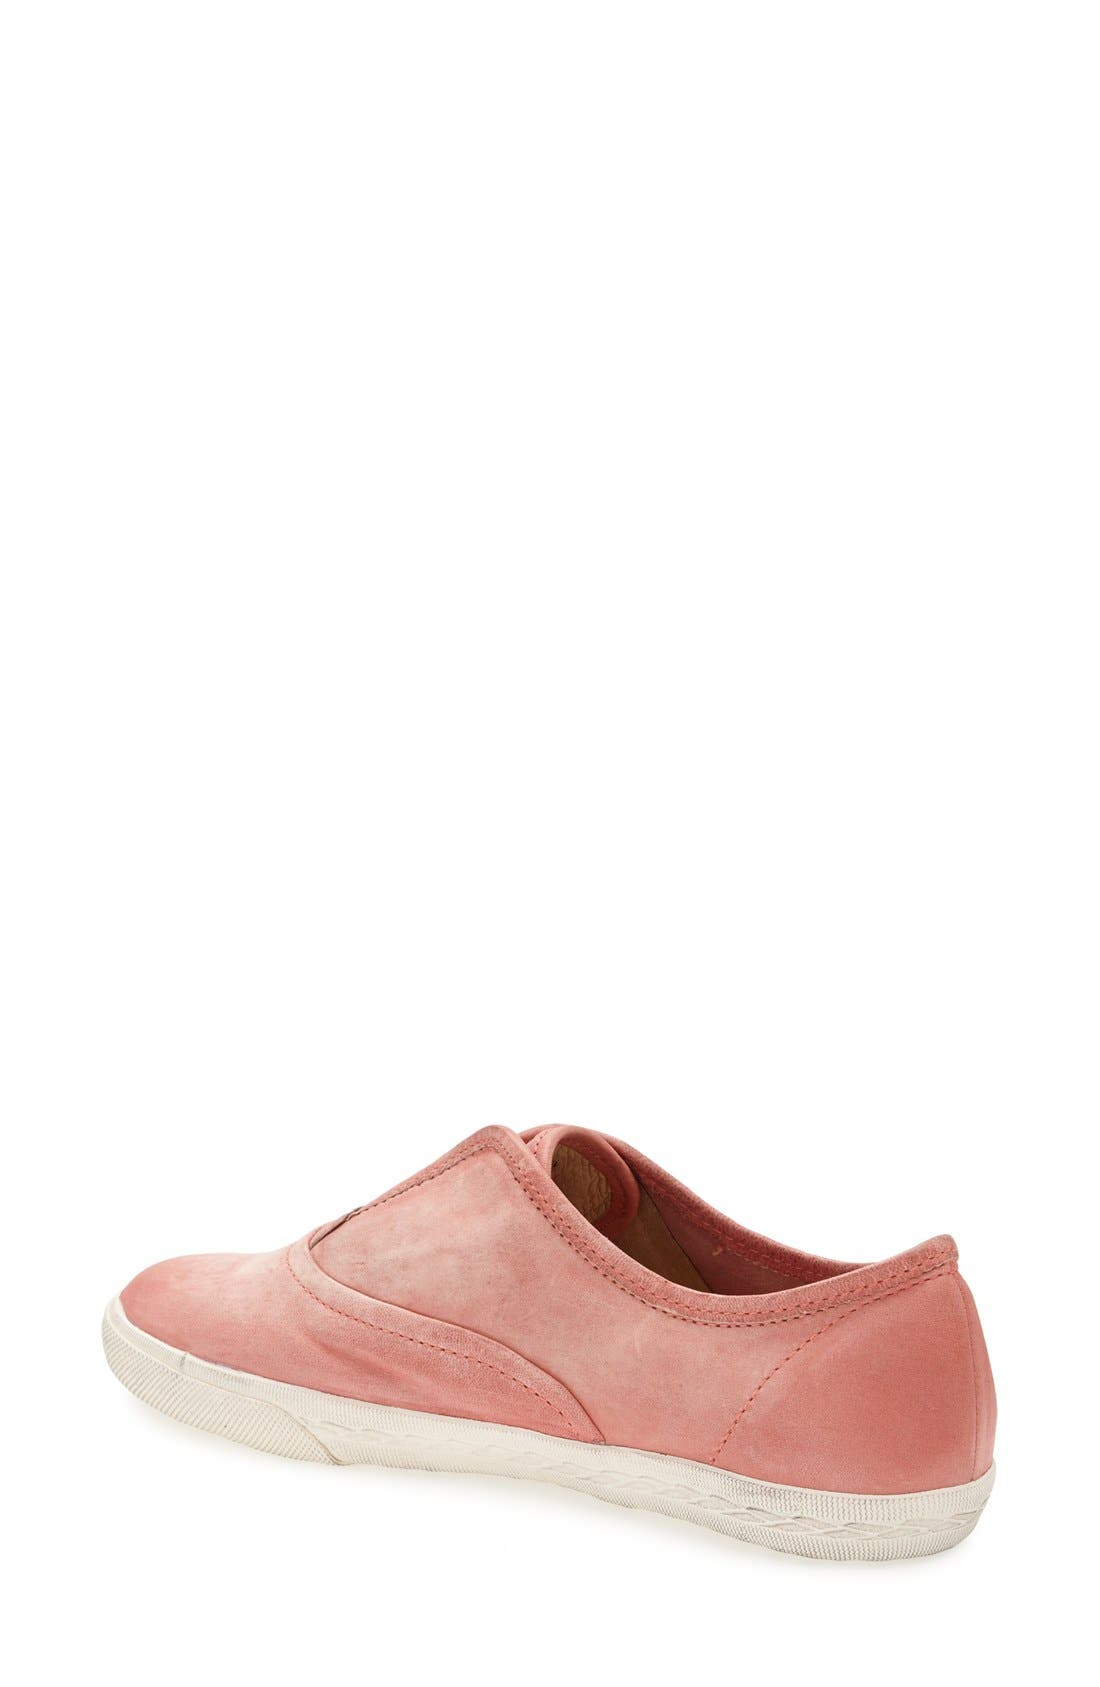 'Mindy' Slip-On Leather Sneaker,                             Alternate thumbnail 44, color,